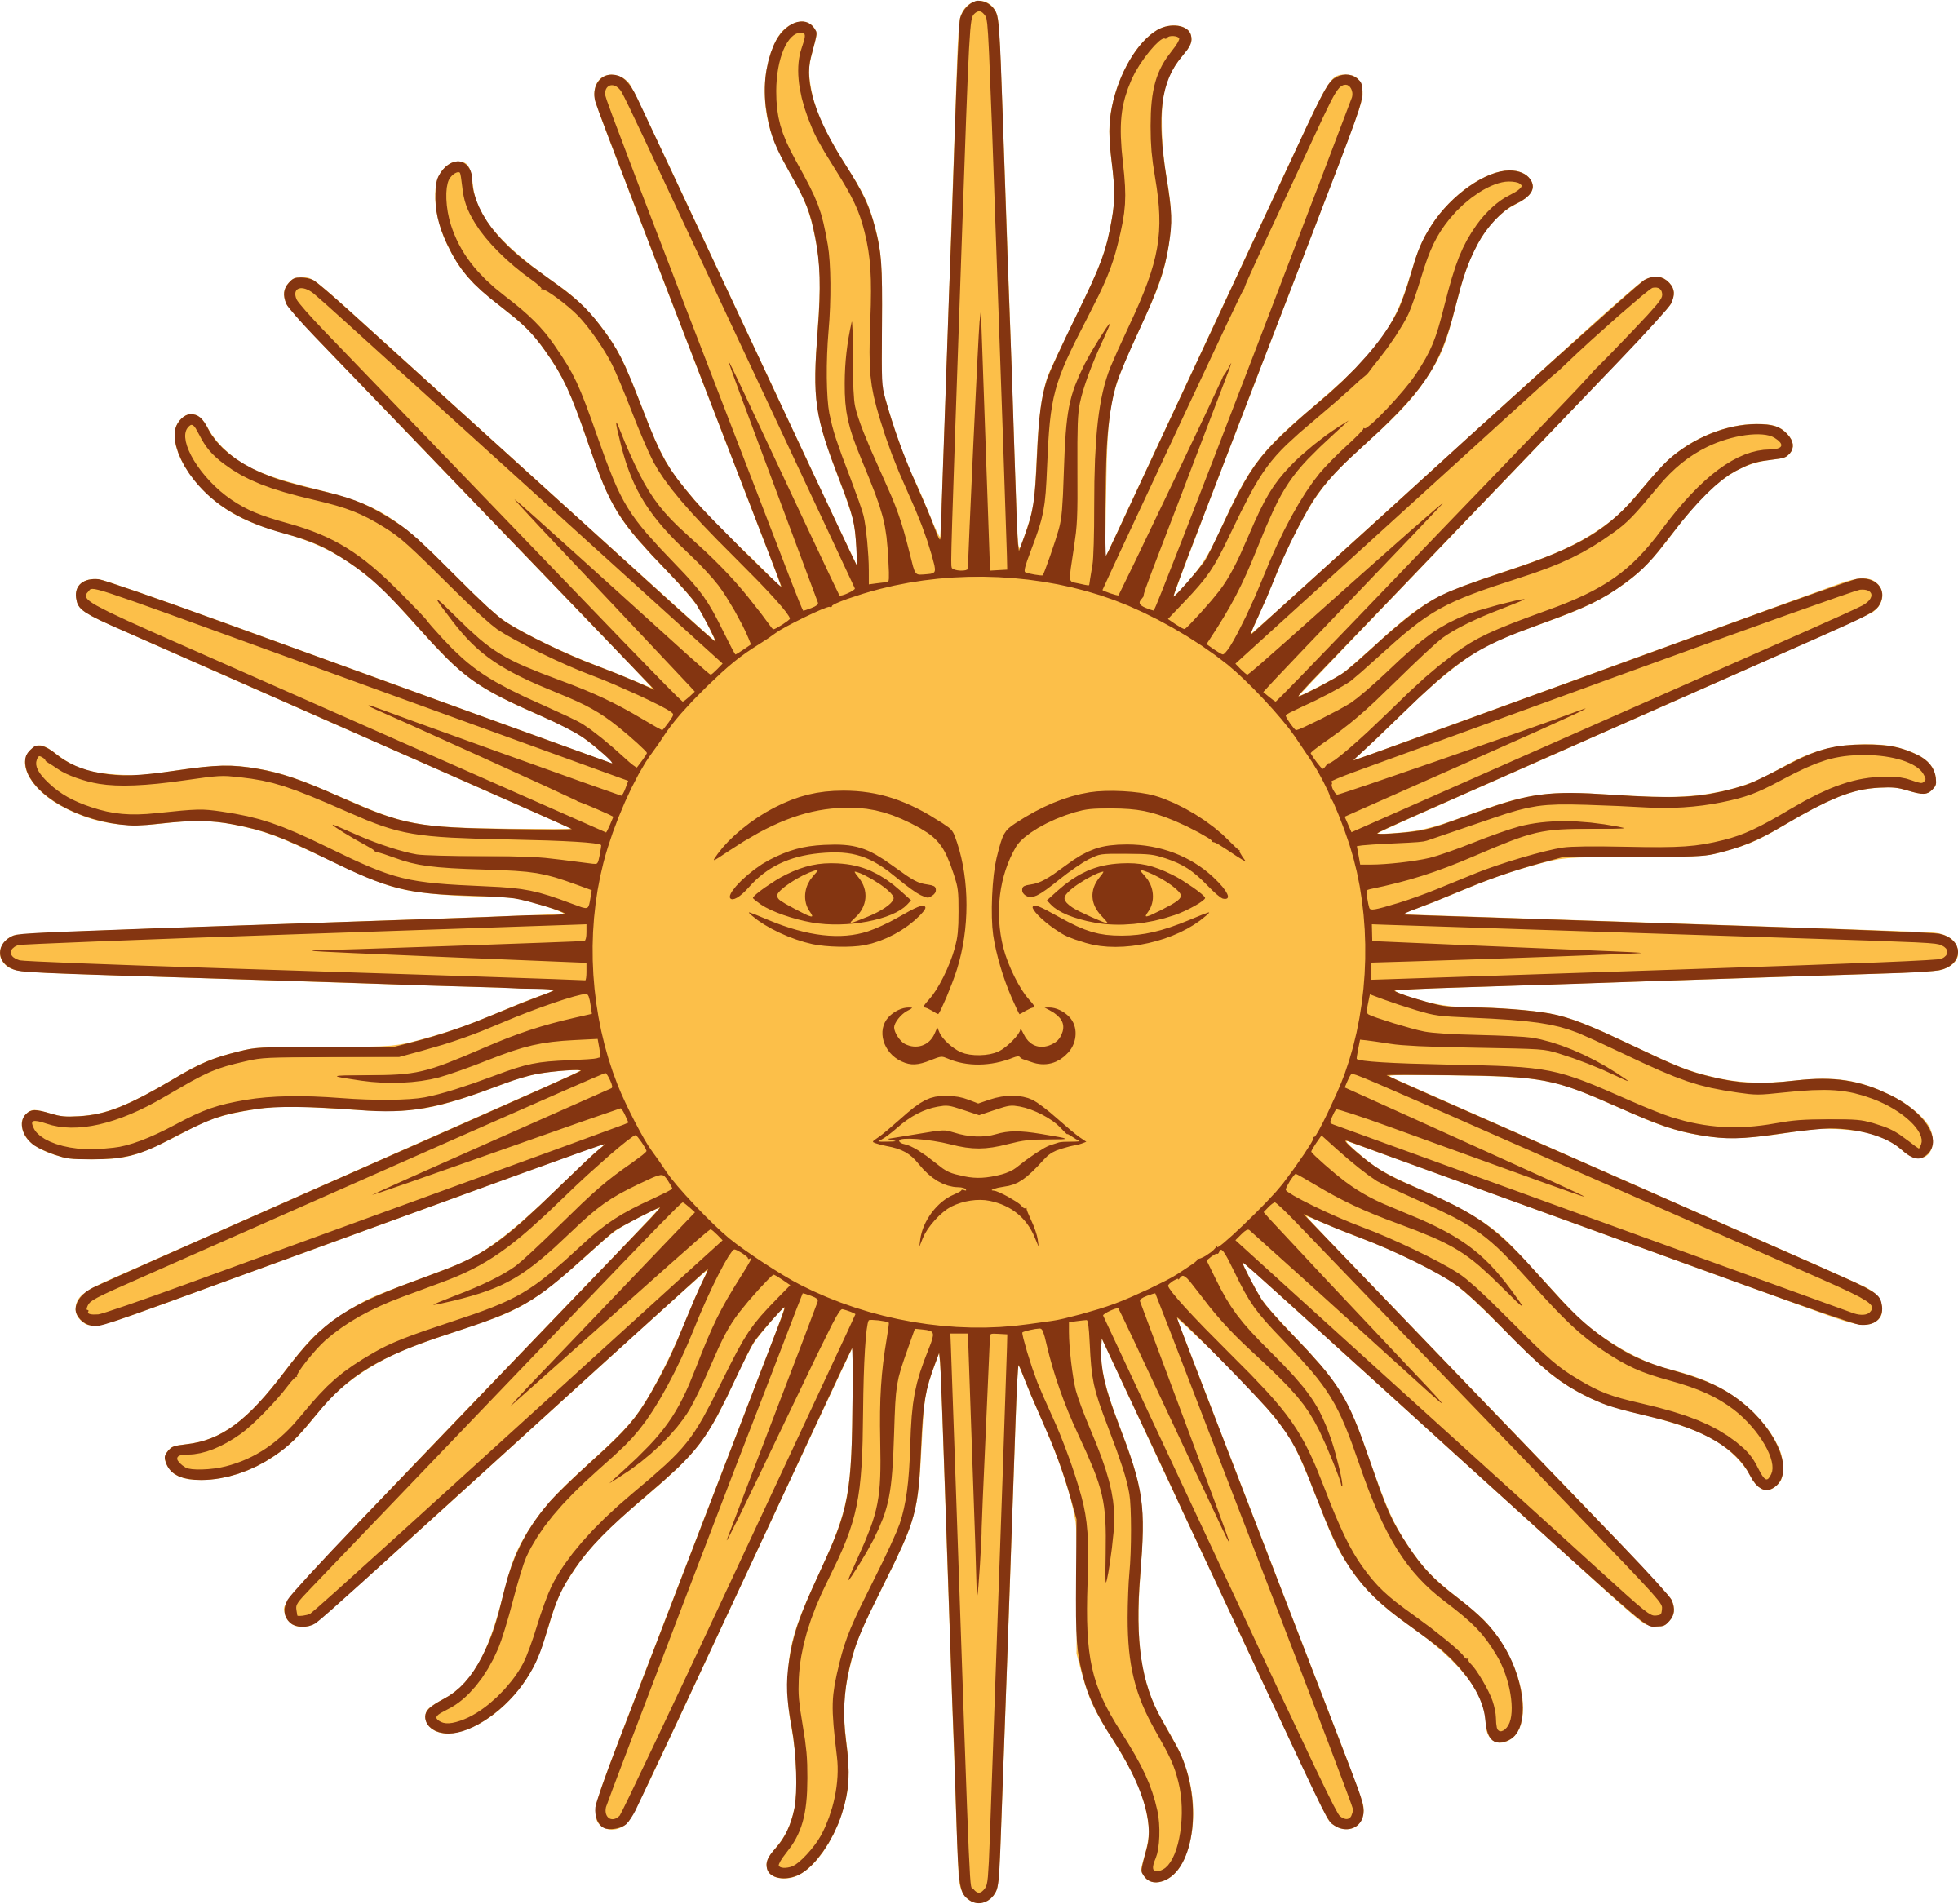 Trippy sun clipart clip art royalty free stock Sol de Mayo-Bandera de Argentina by @liftarn, The sun from the flag ... clip art royalty free stock